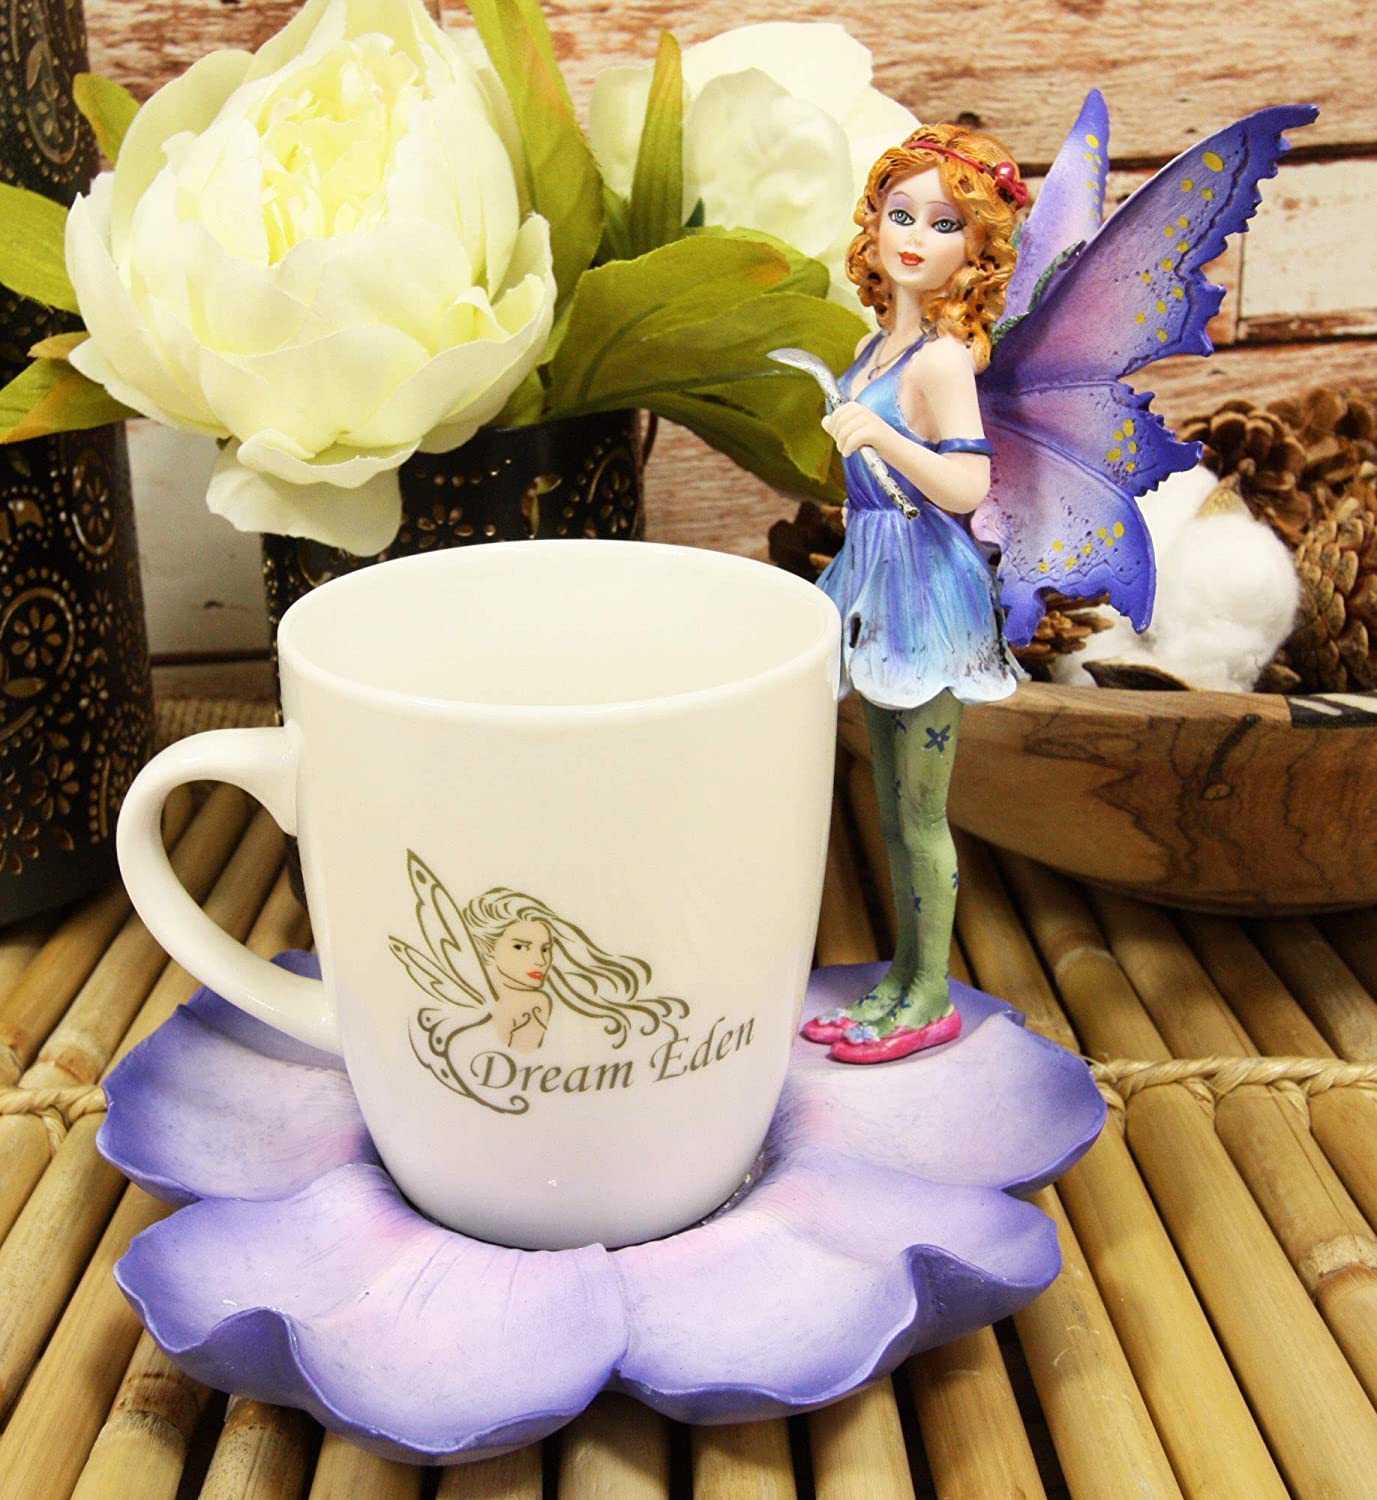 Ebros Fantasy Pixie Beverage Teacup Outlet sale feature On Flower Fairy Standing Sau Special sale item